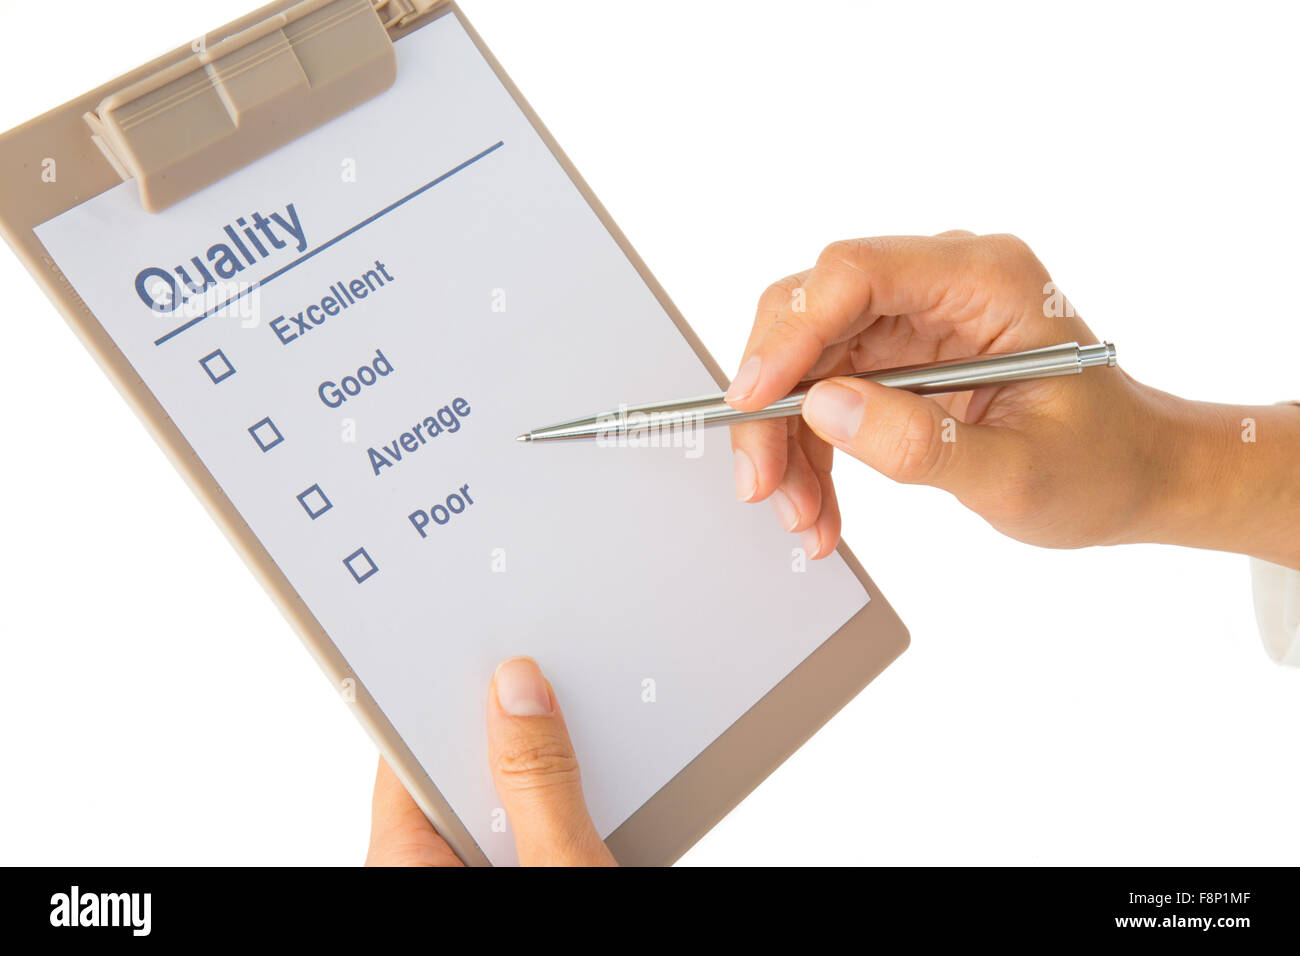 Woman's hand fills out quality checklist on white - Stock Image